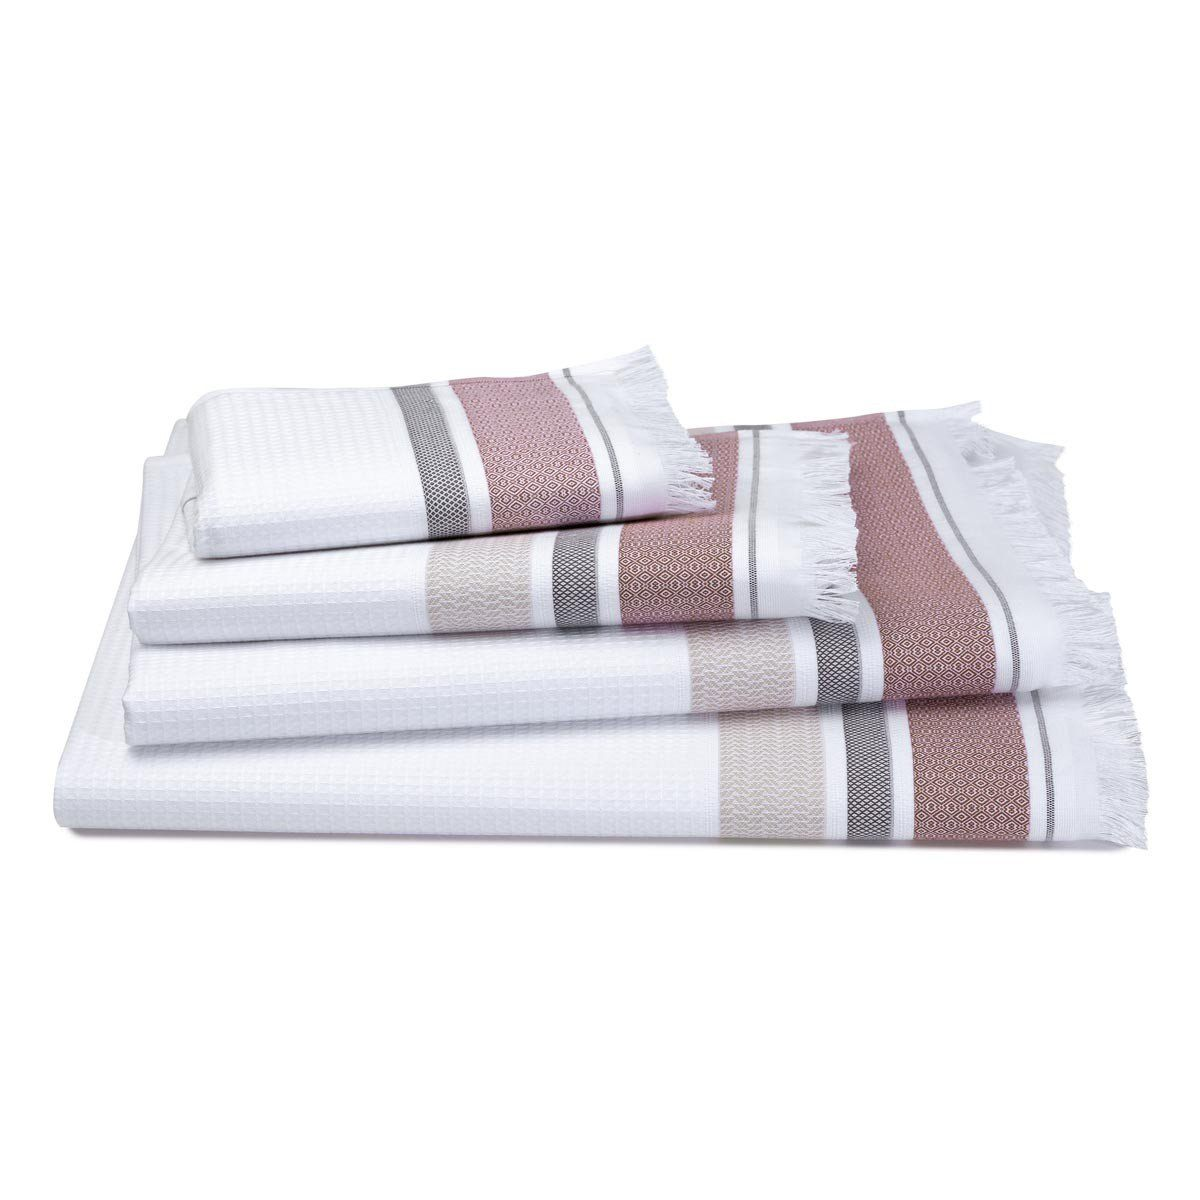 Le Jacquard Français | Folk Camel Bath Collection | Fig Linens - Hand Towel, Bath, Guest Towel